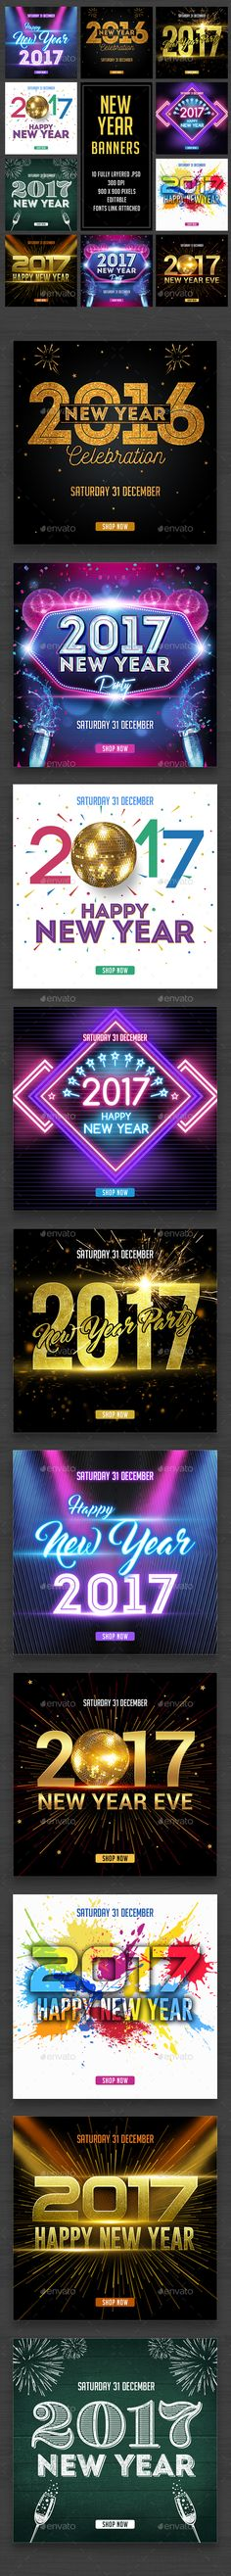 New Year Banner Templates PSD